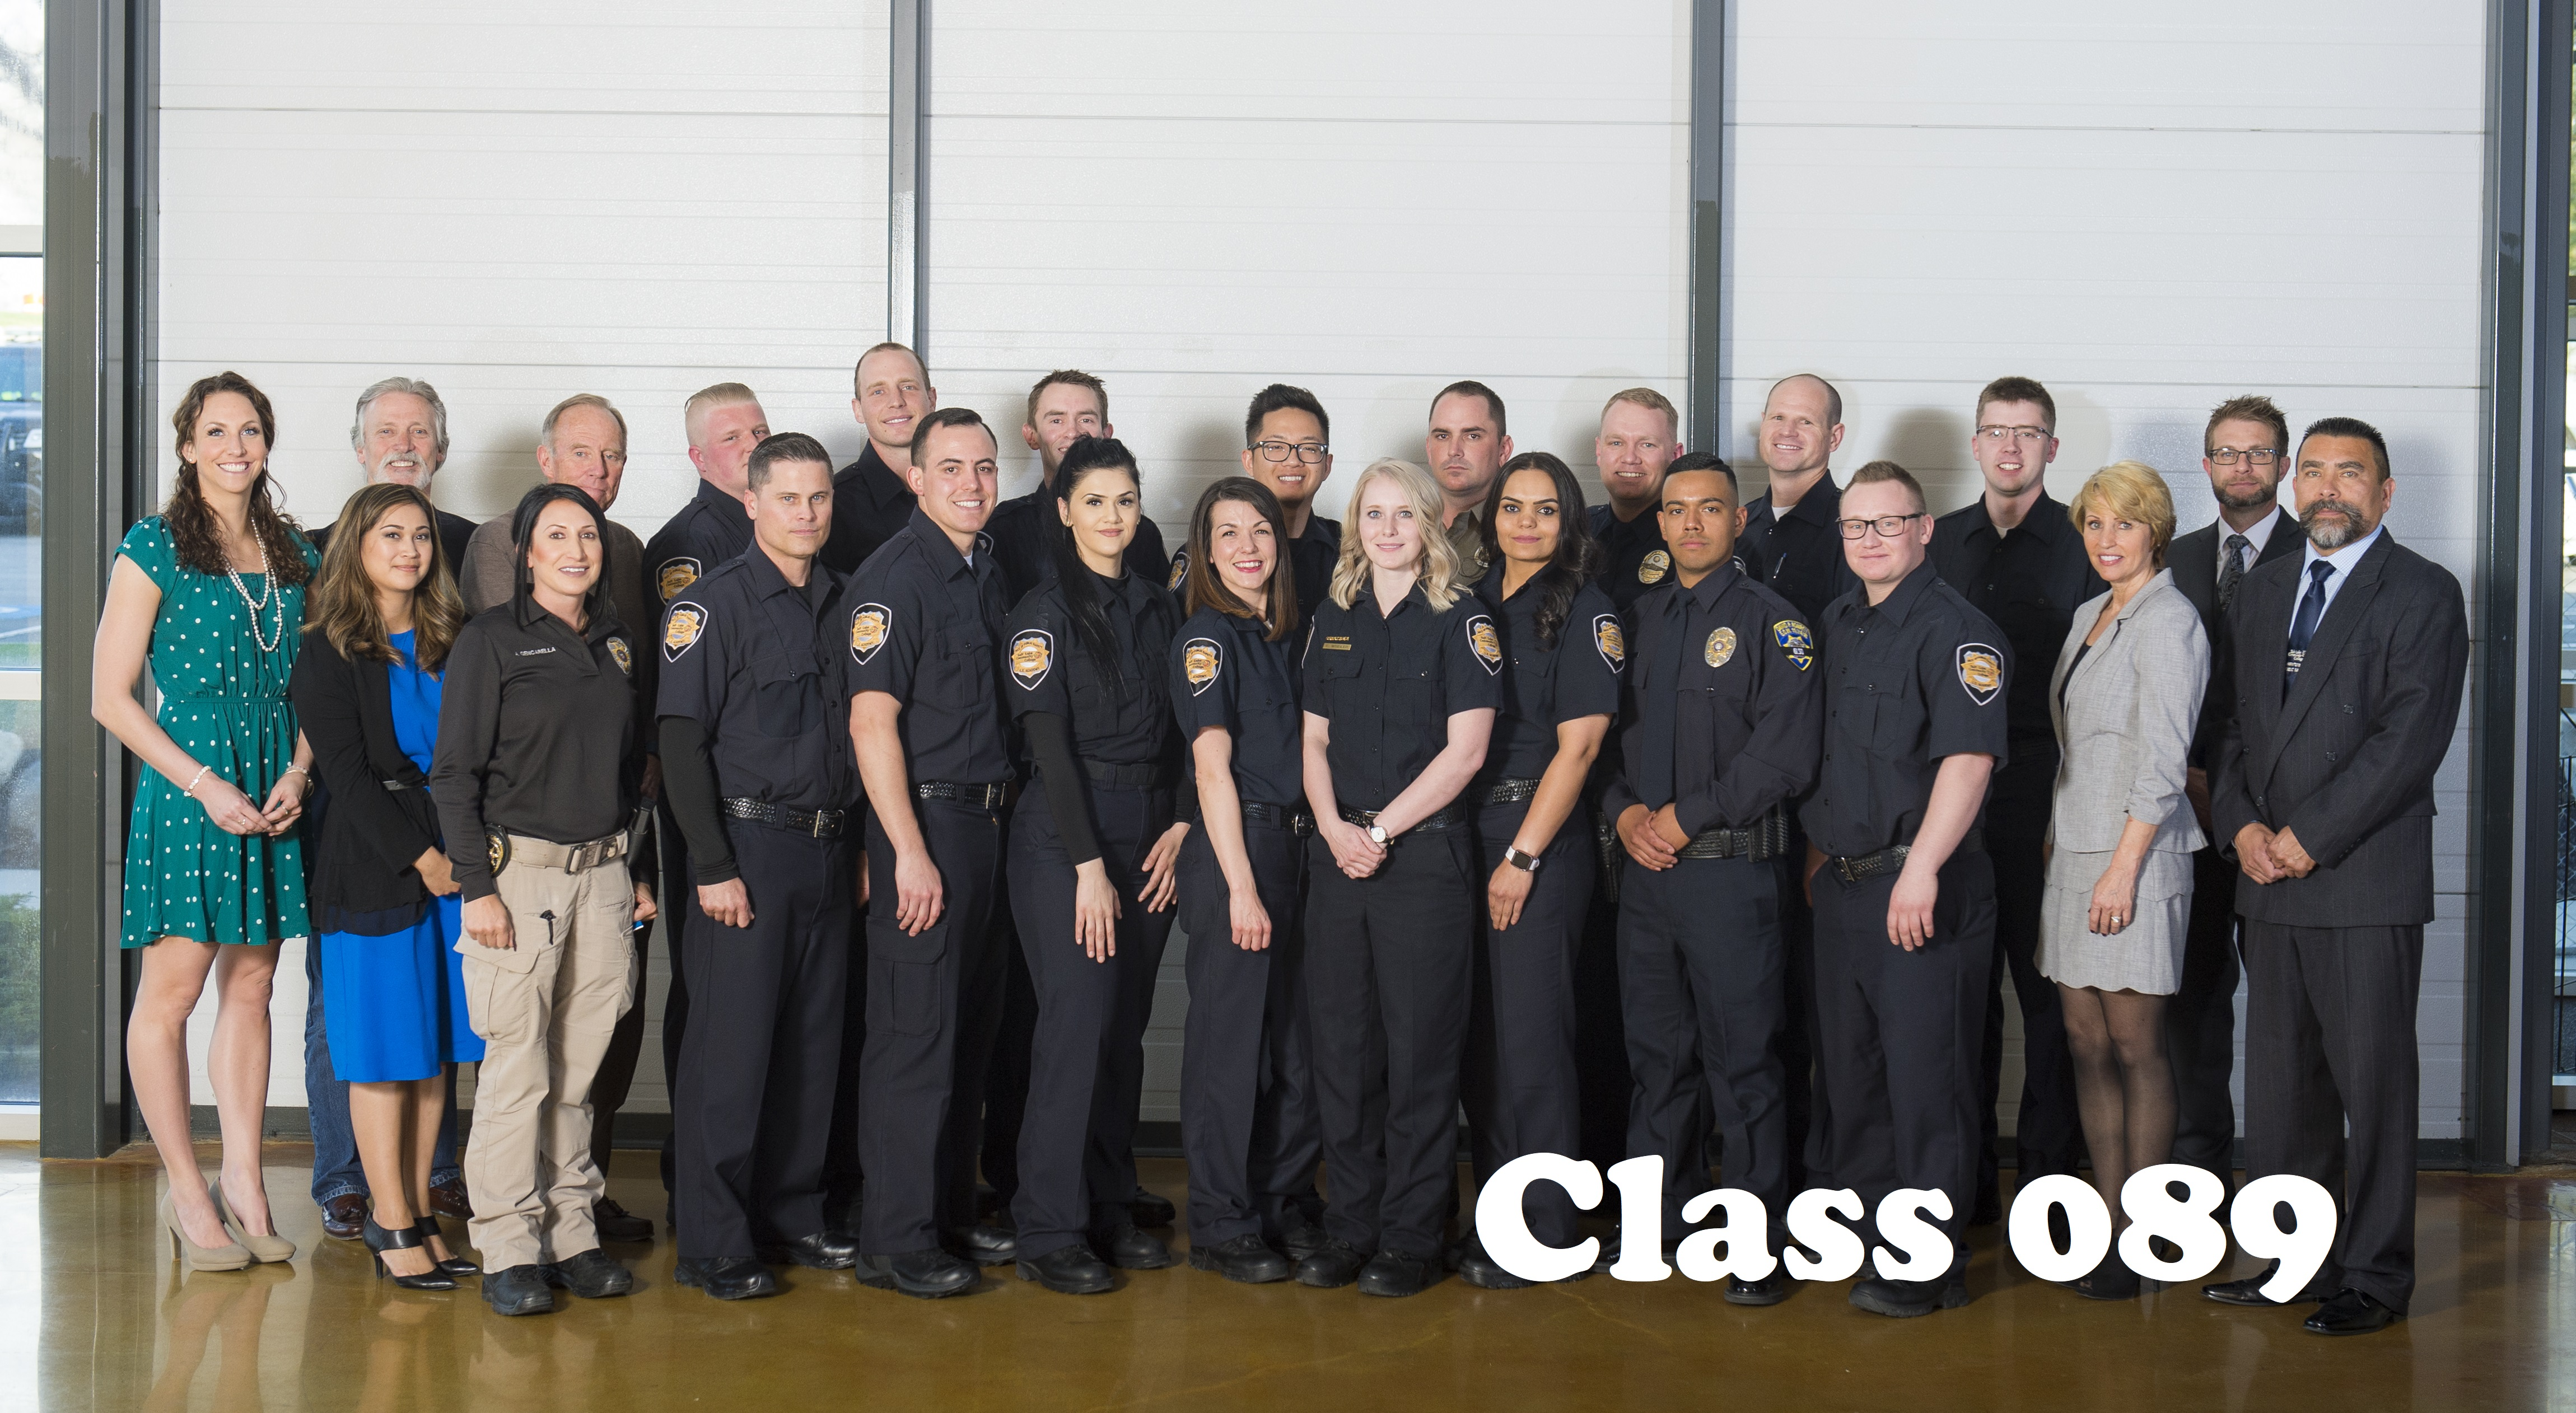 Slcc Fall 2020 Class Schedule Law Enforcement Academy | SLCC